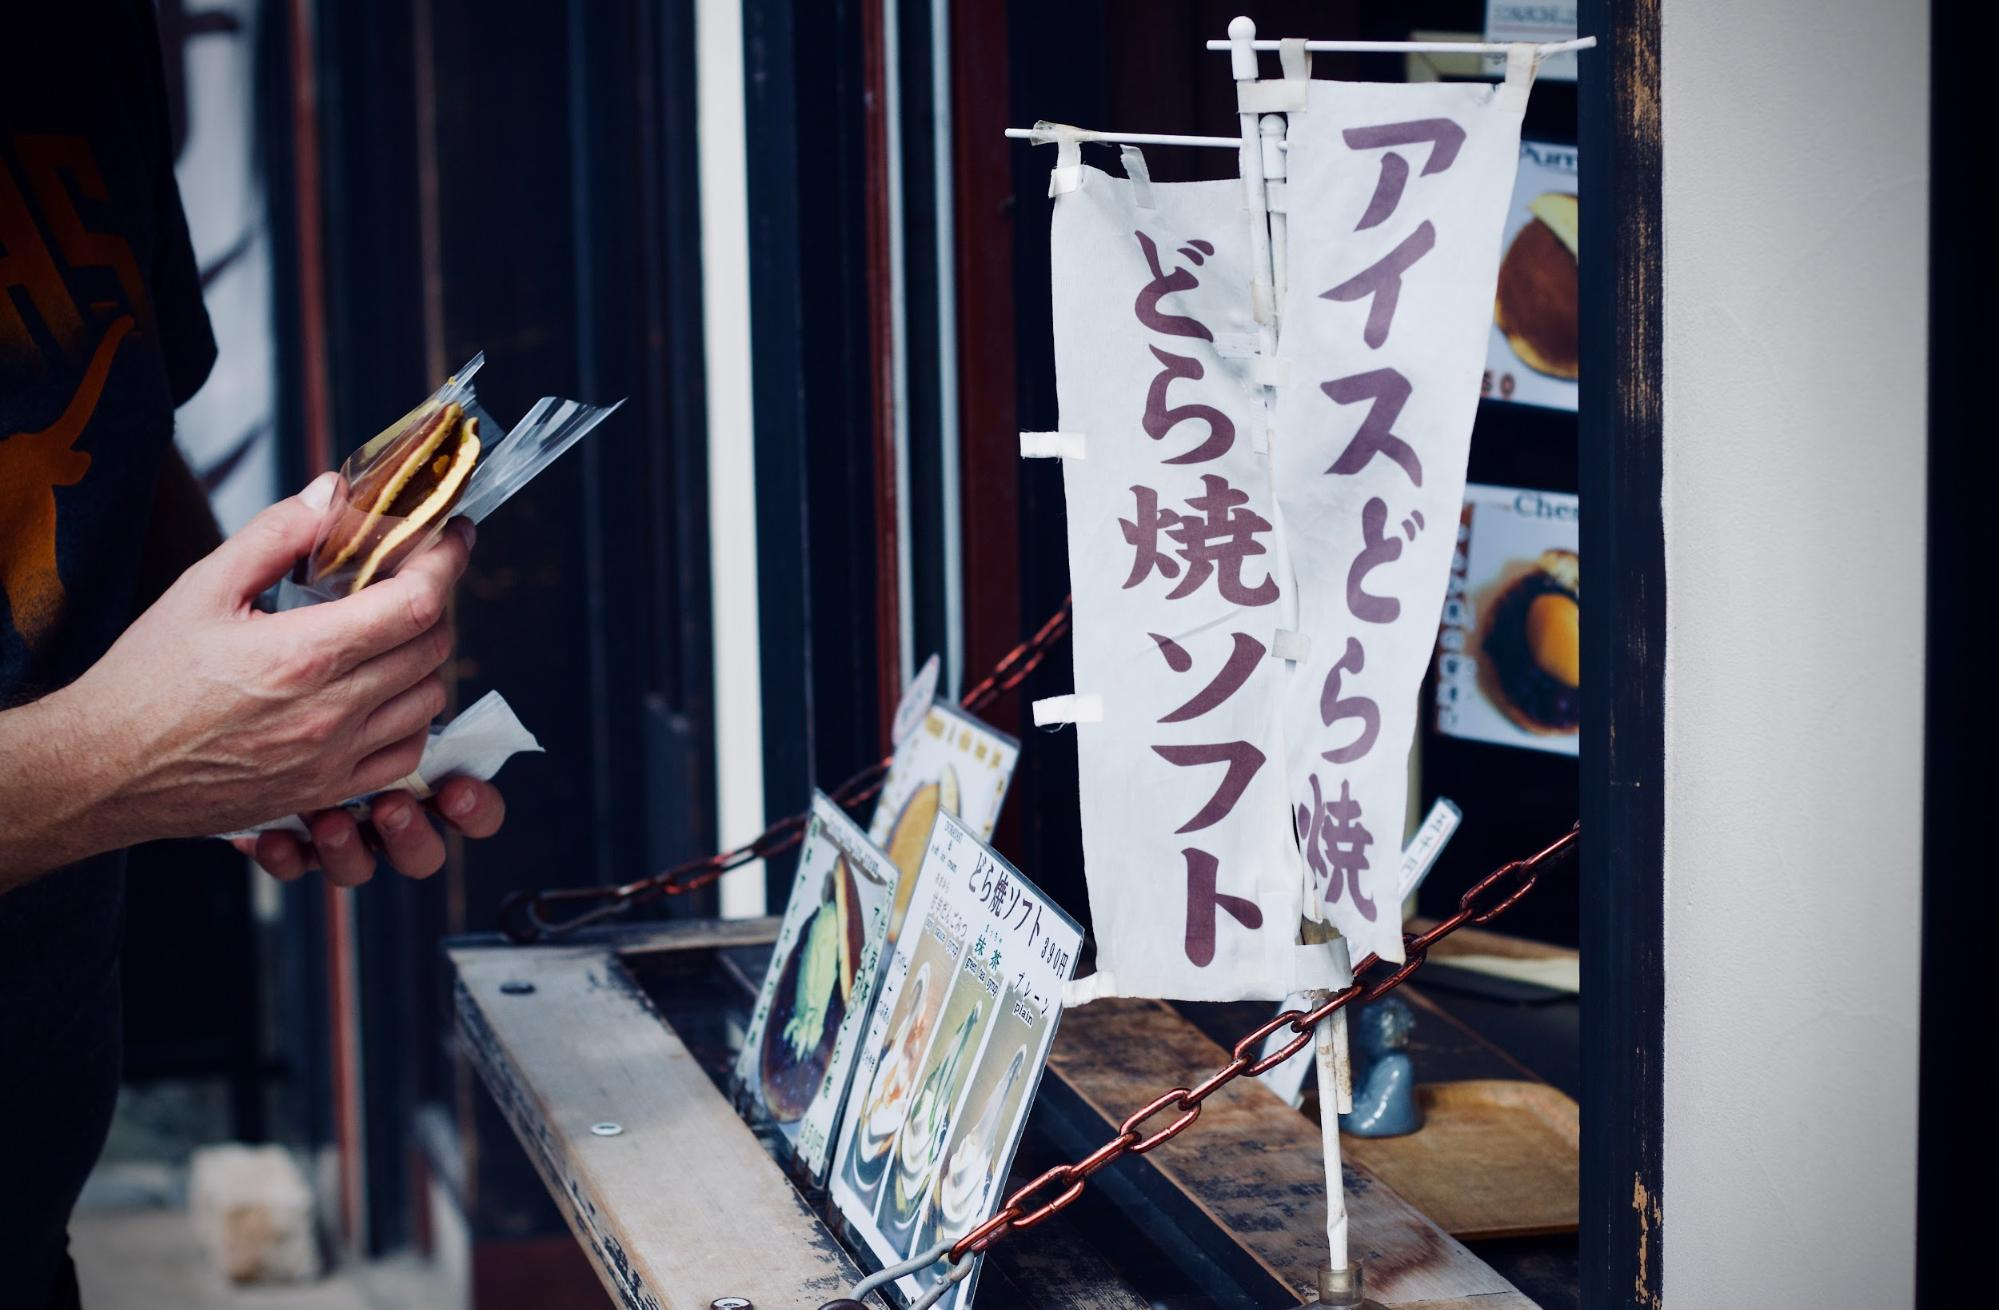 paying for an Japanese street food